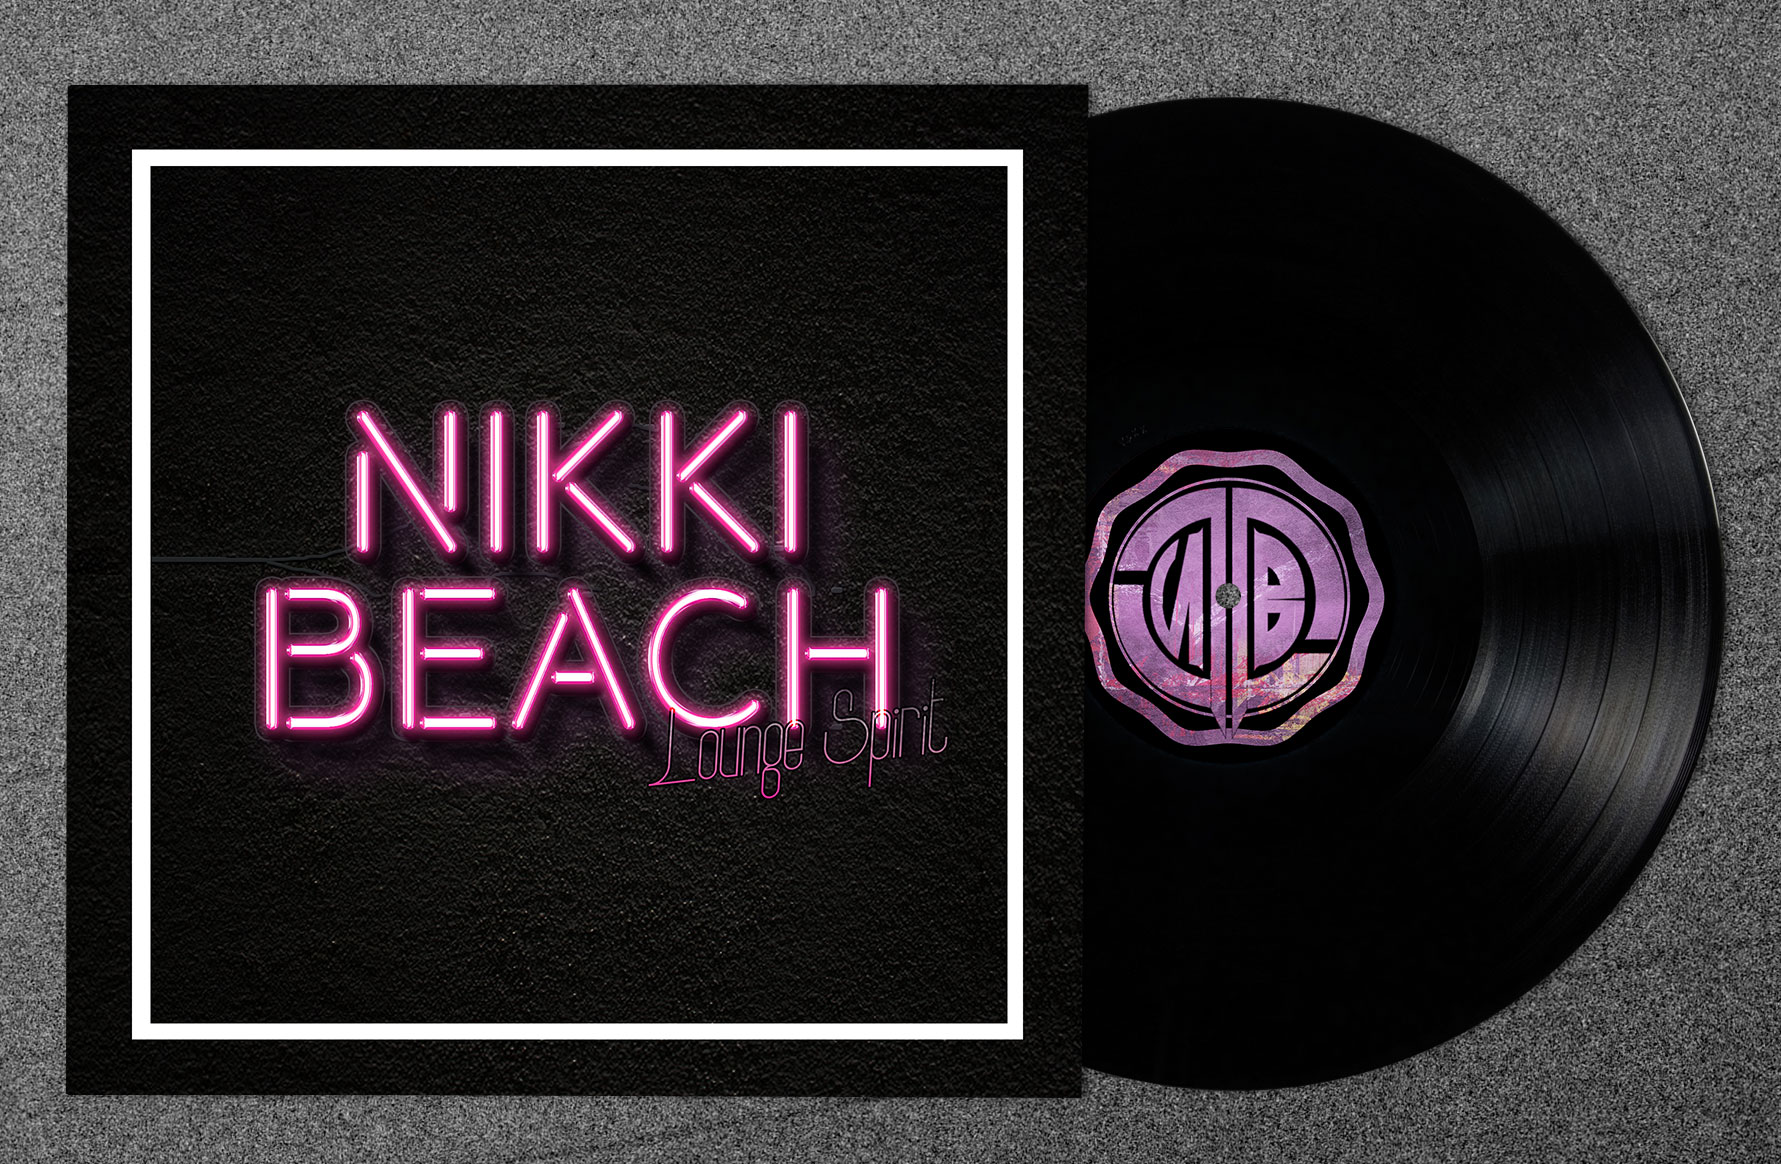 Nikki Beach Lounge Spirit by TBoon